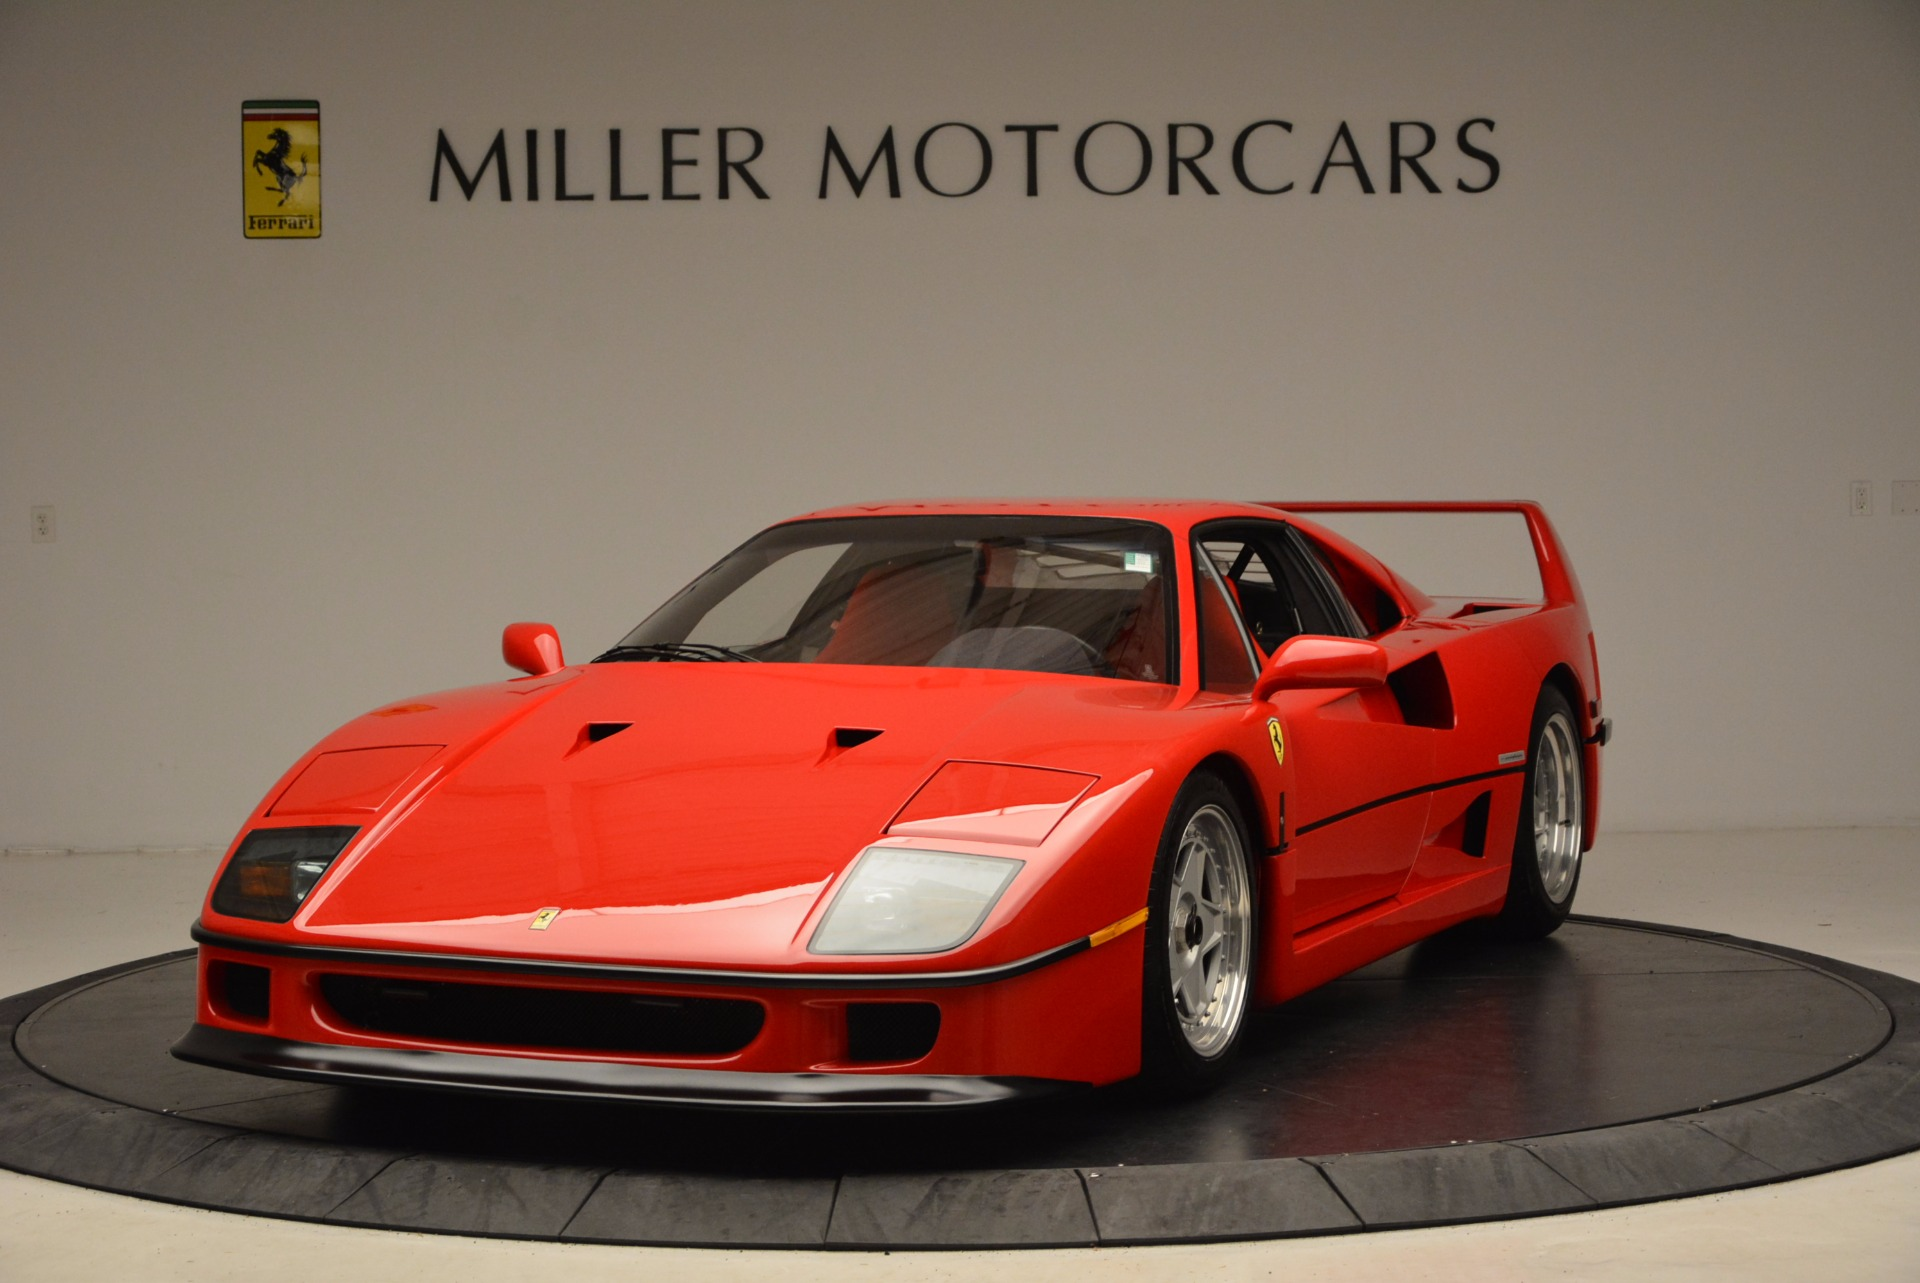 1992 ferrari f40 stock # 4389 for sale near greenwich, ct | ct